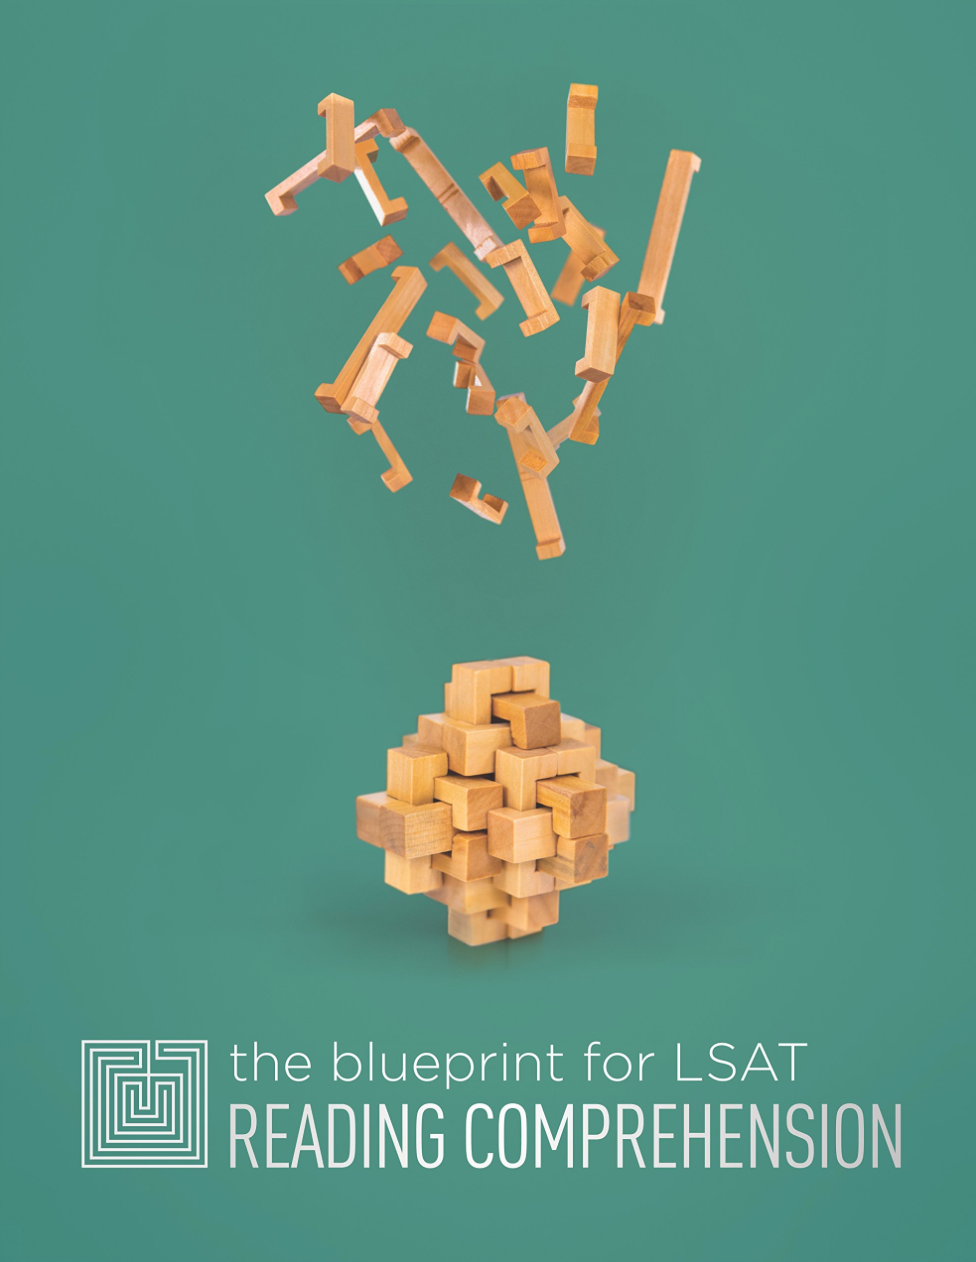 New lsat reading comprehension book released by blueprint test additional images malvernweather Images